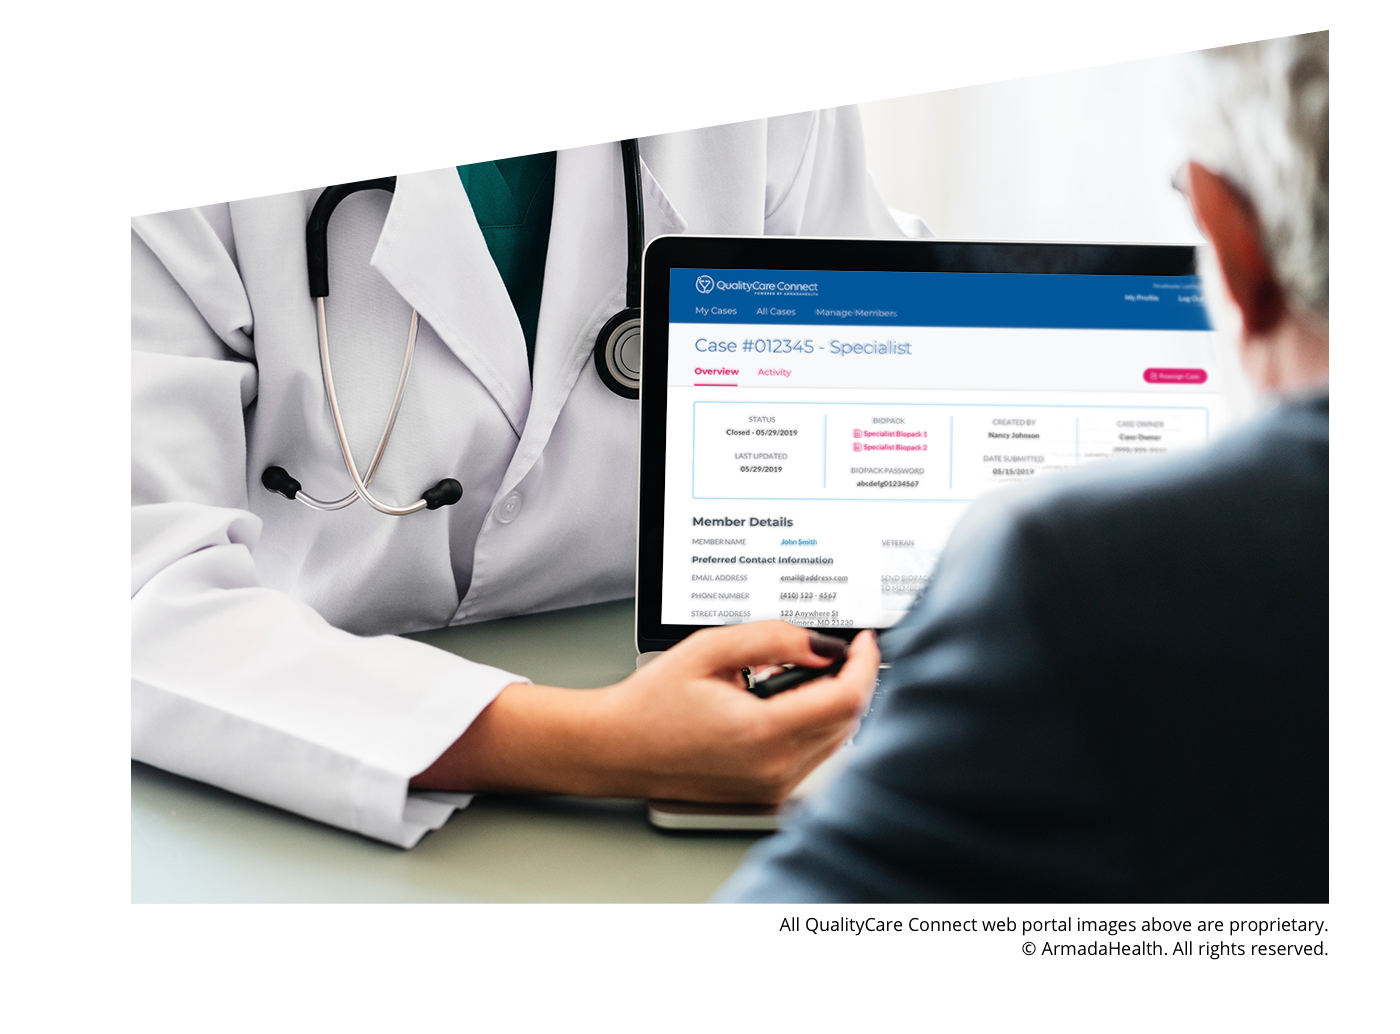 A doctor showing a patient some information using ArmadaHealth's web portal